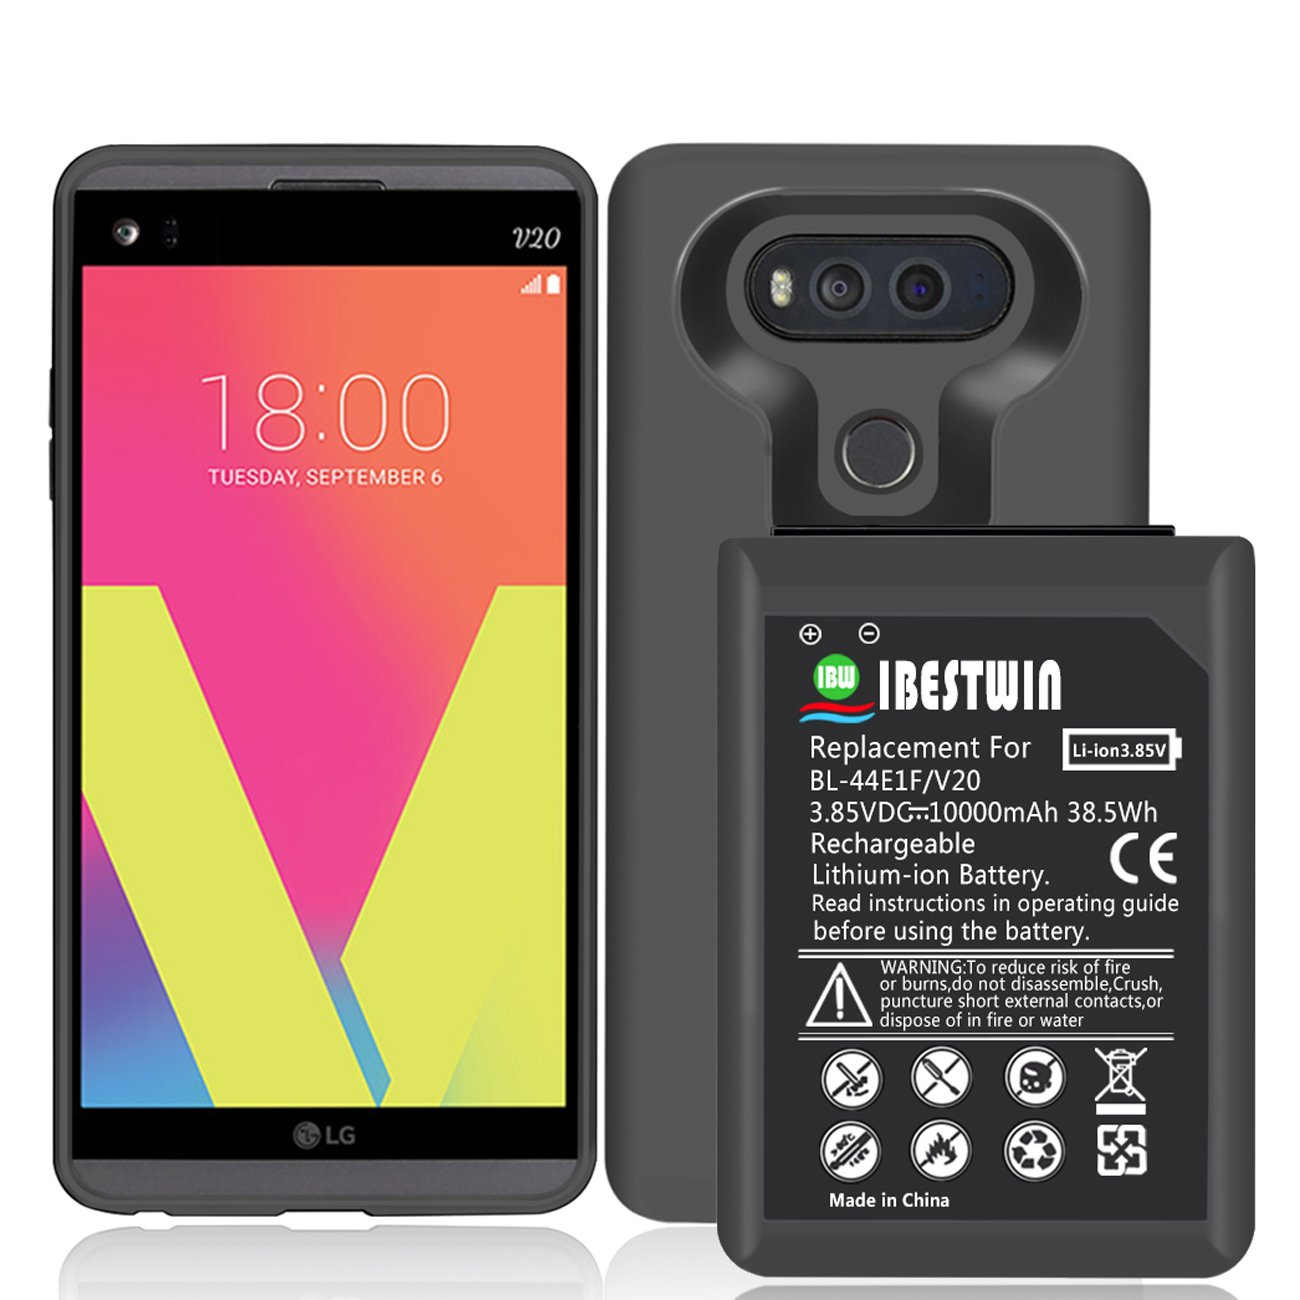 IBESTWIN 10000mAh High Capacity Replacement Battery for LG V20 BL-44E1F H918 H910 US996 LS997 VS995 with Soft TPU Protective Case by IBESTWIN